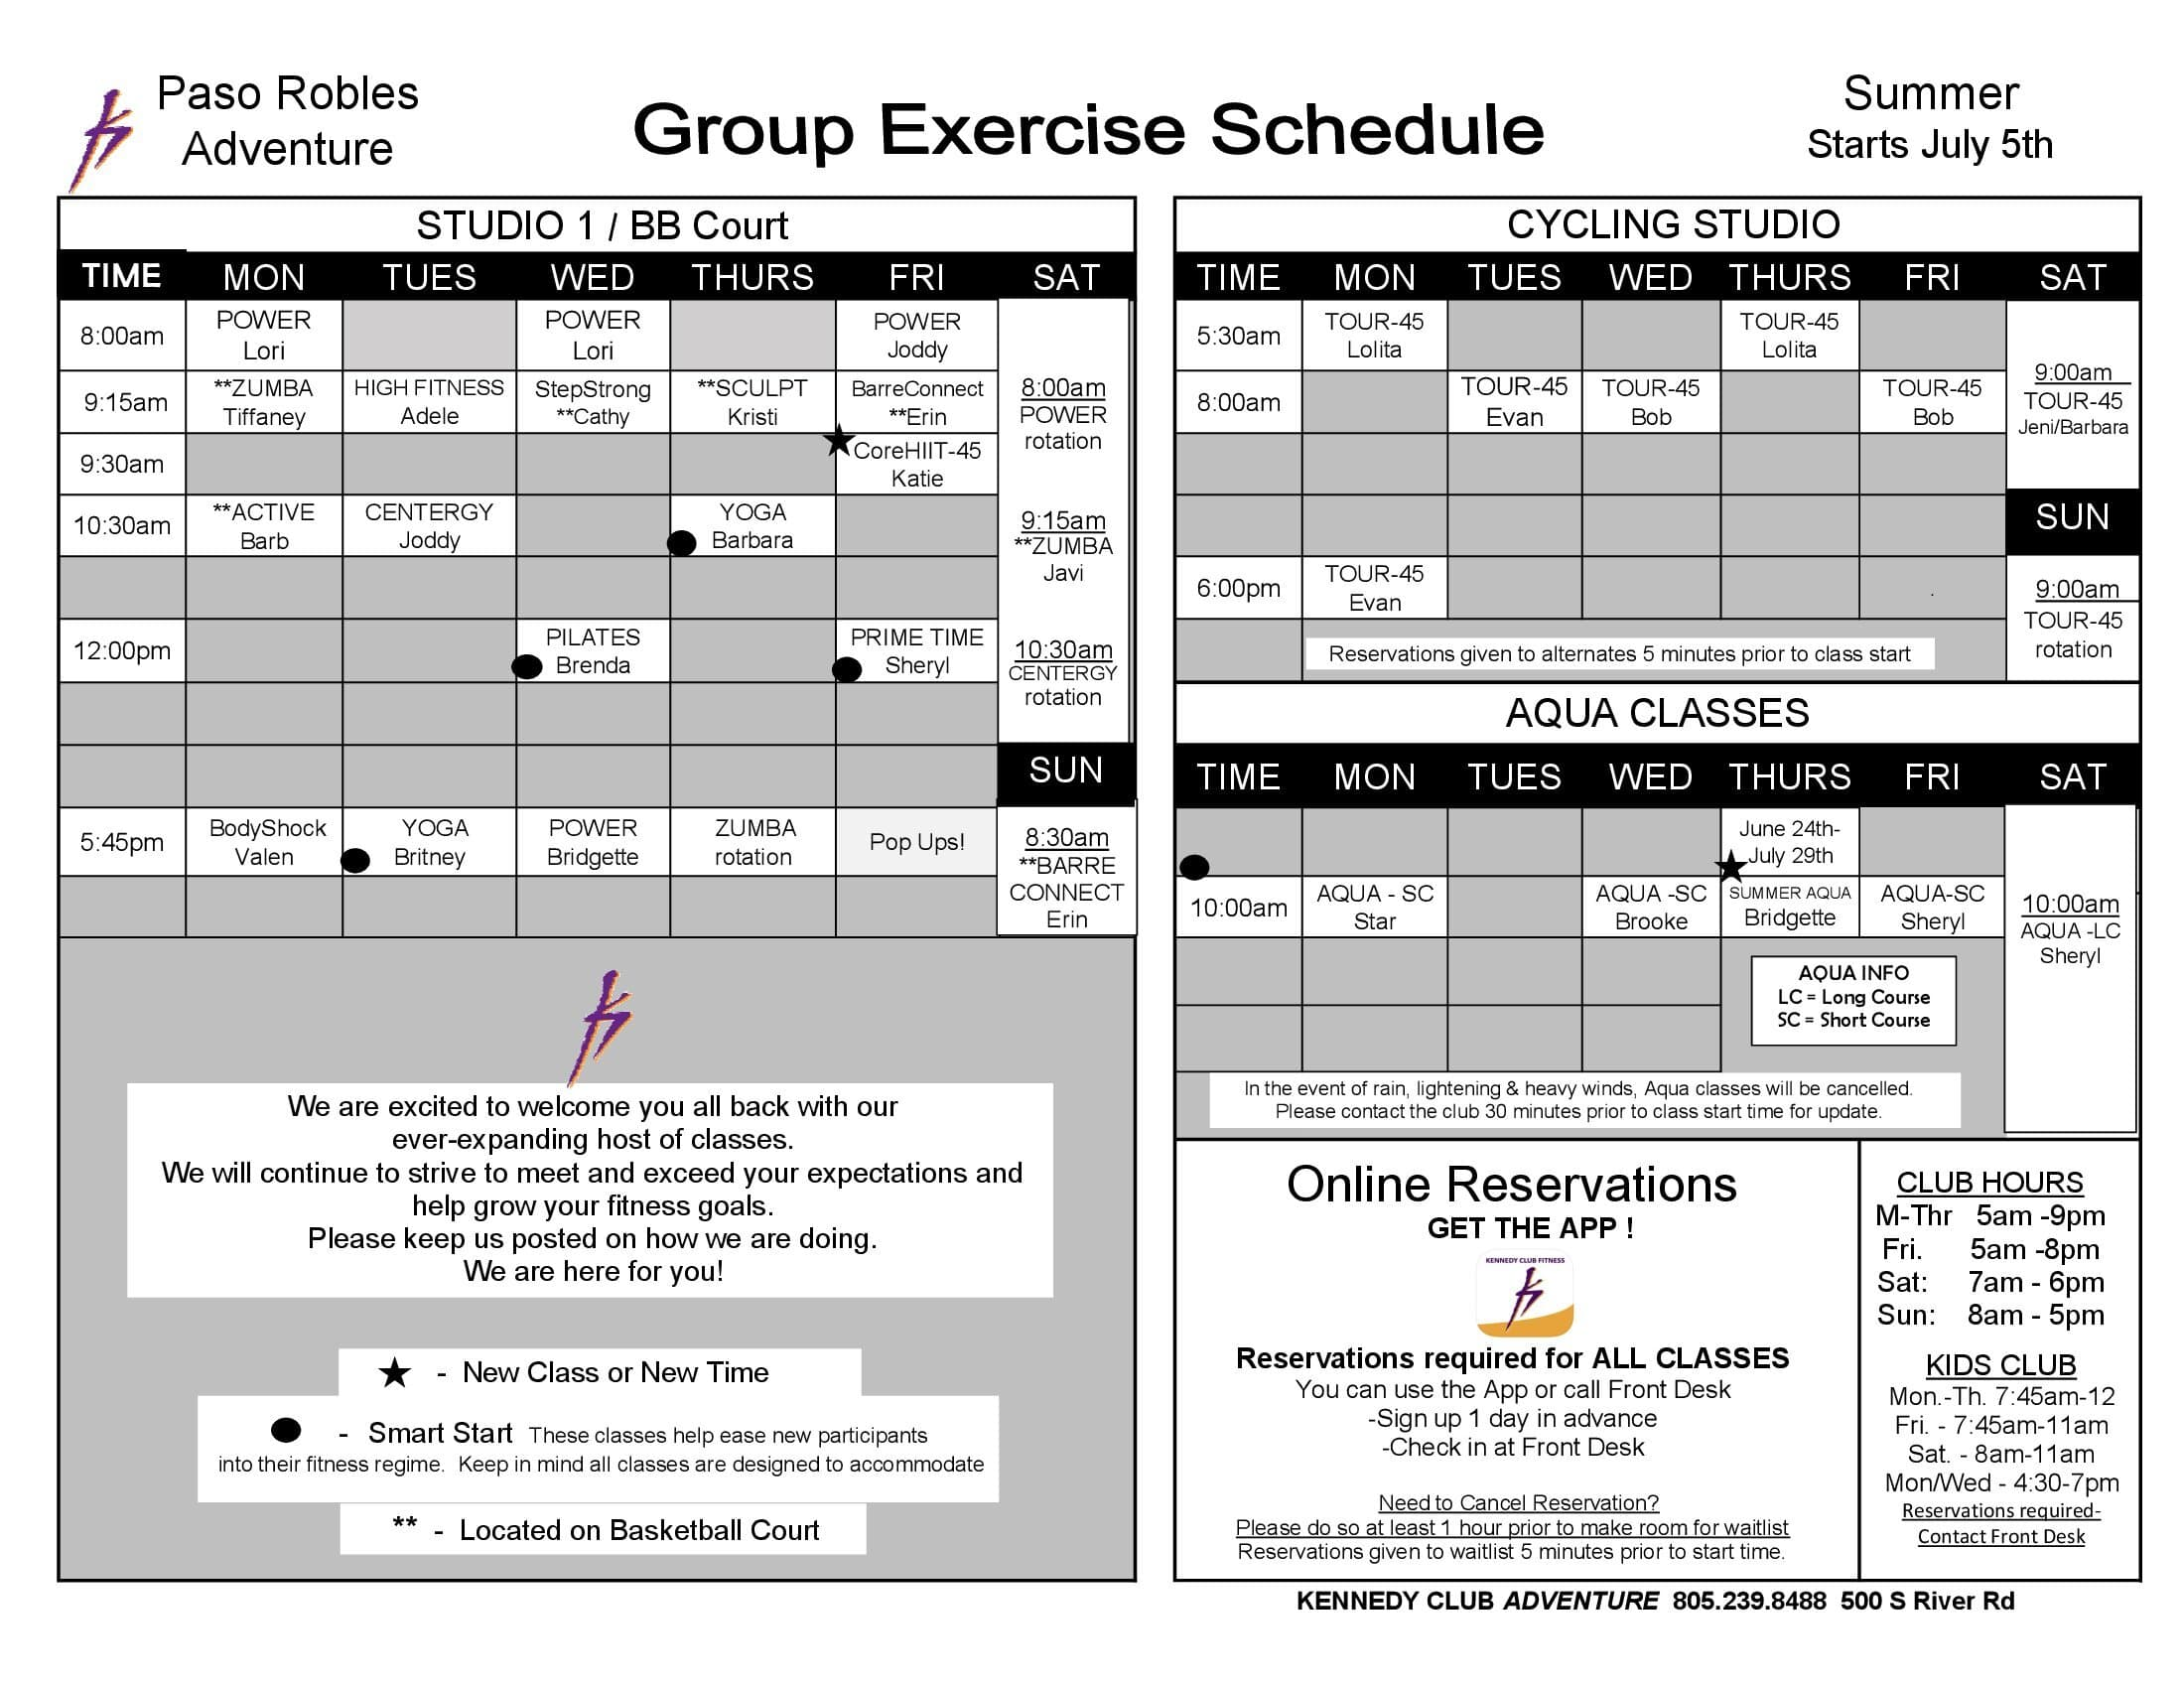 Kennedy Club Fitness Group Exercise Schedule 07 05 2021